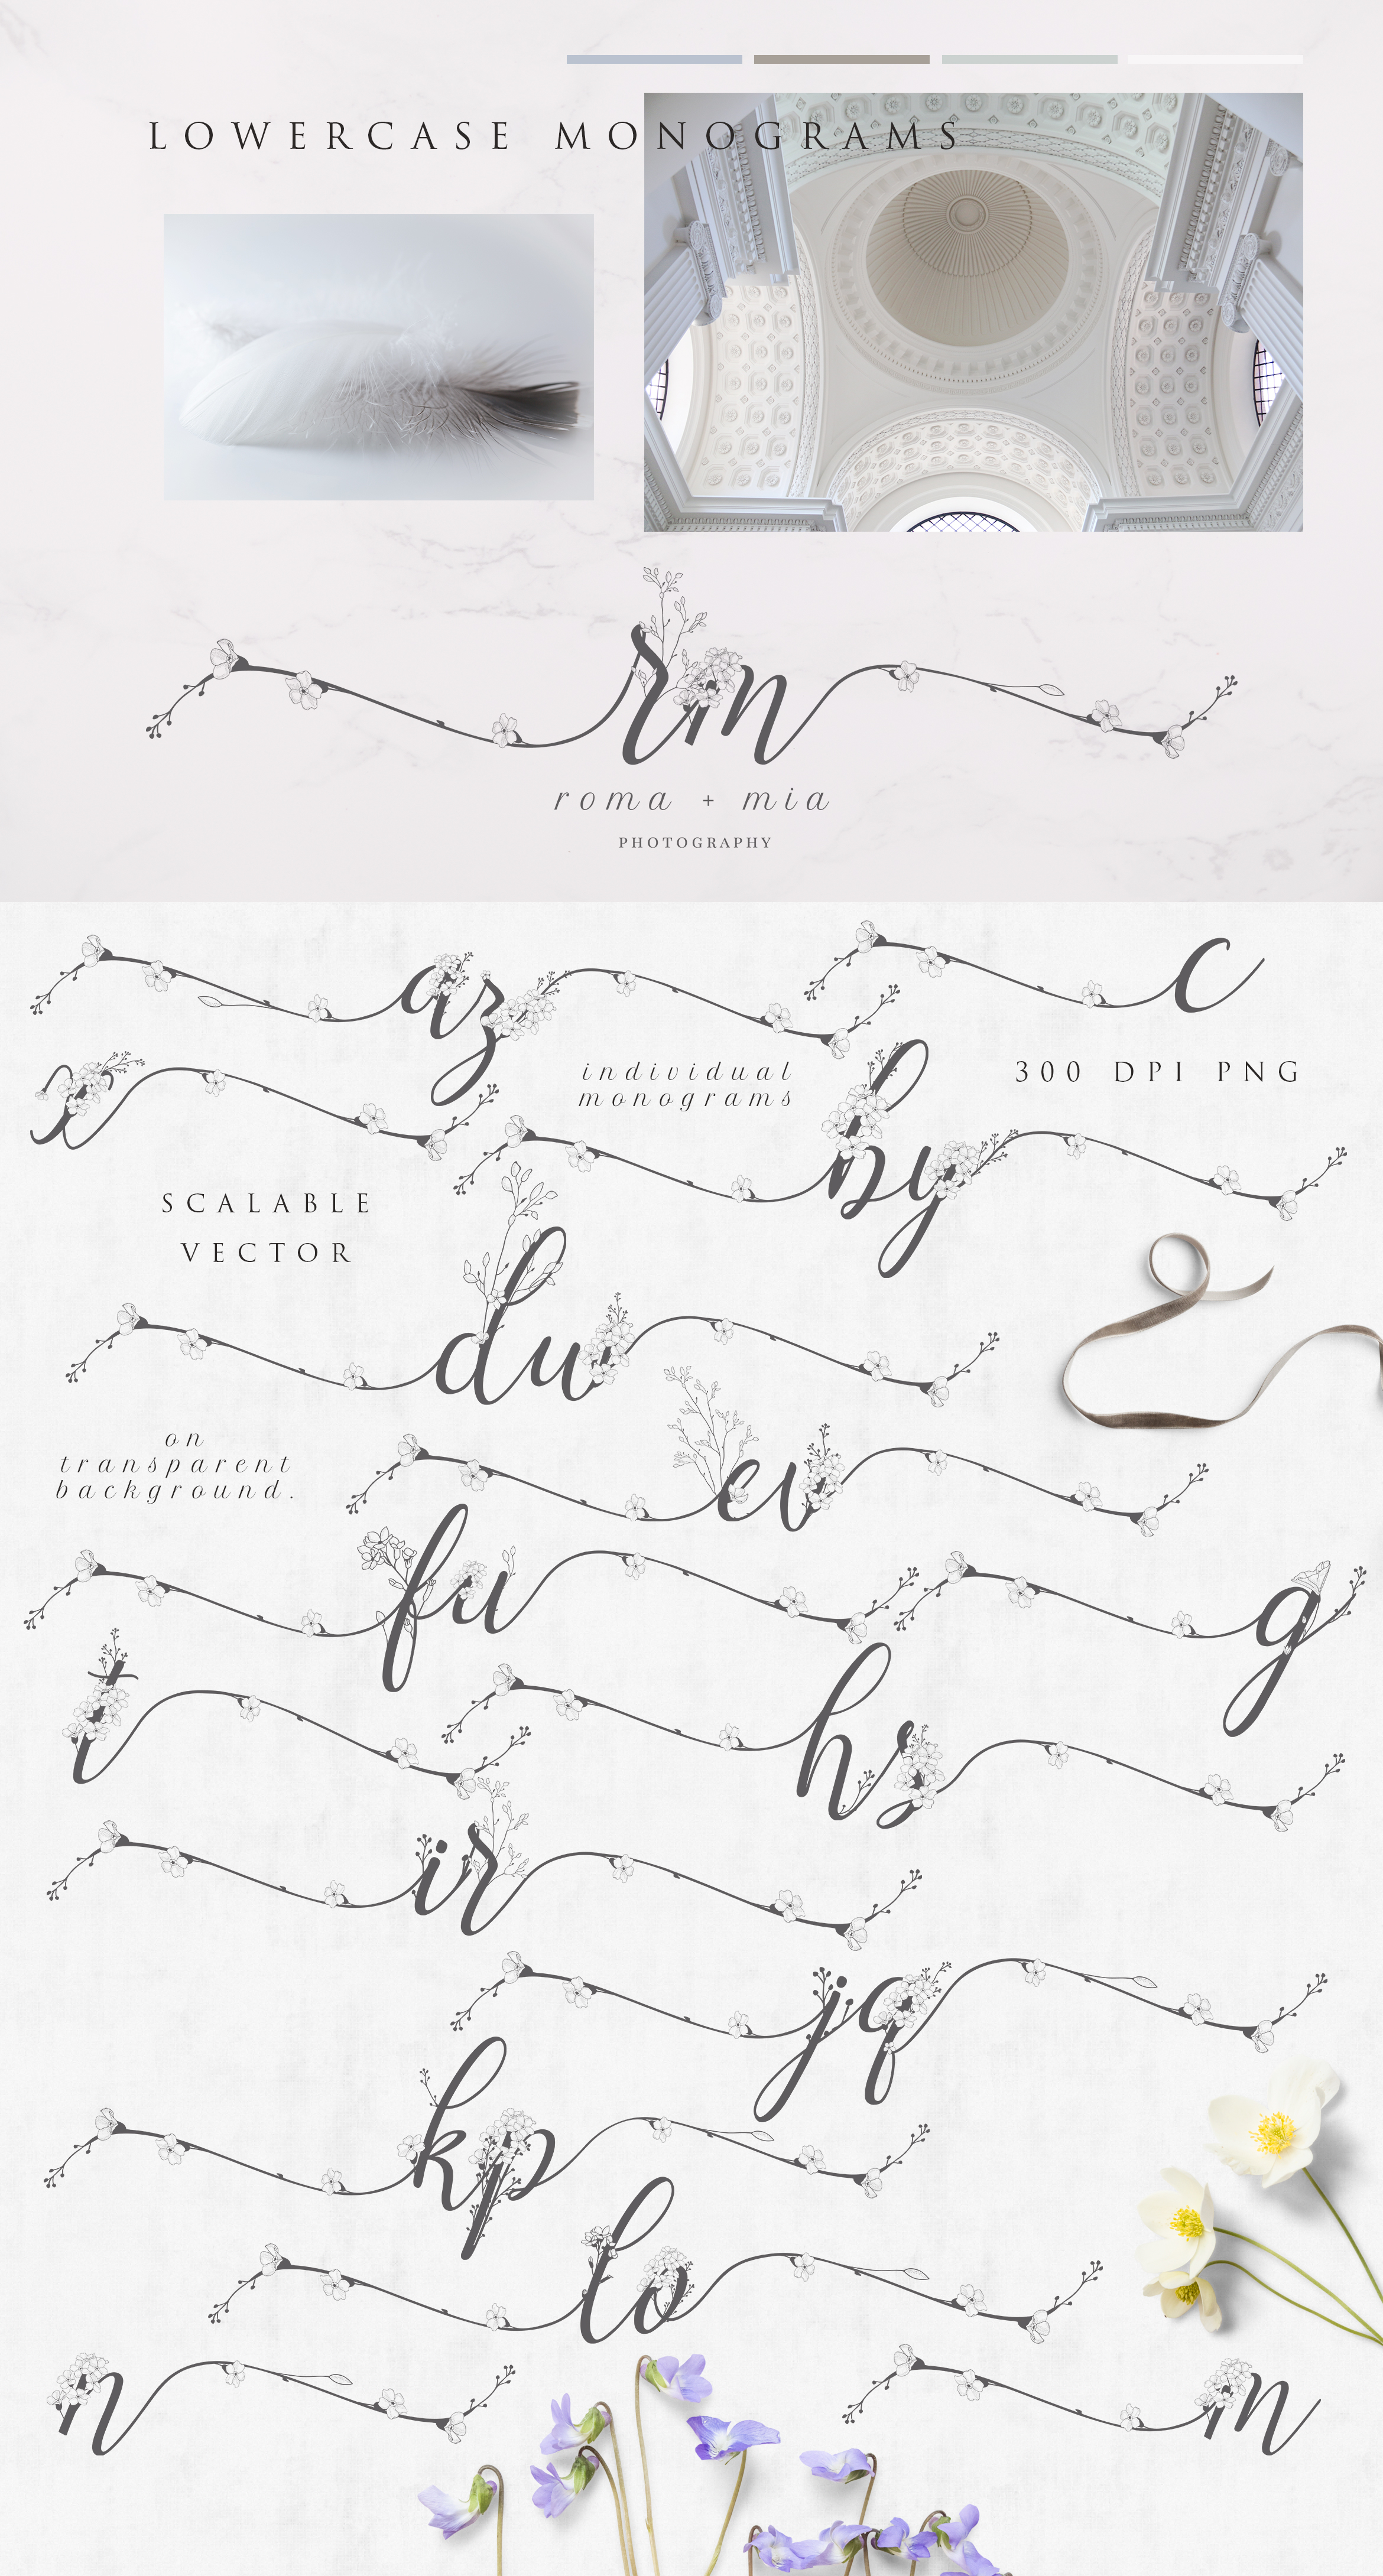 Flowered Monograms & Logo Collection example image 4